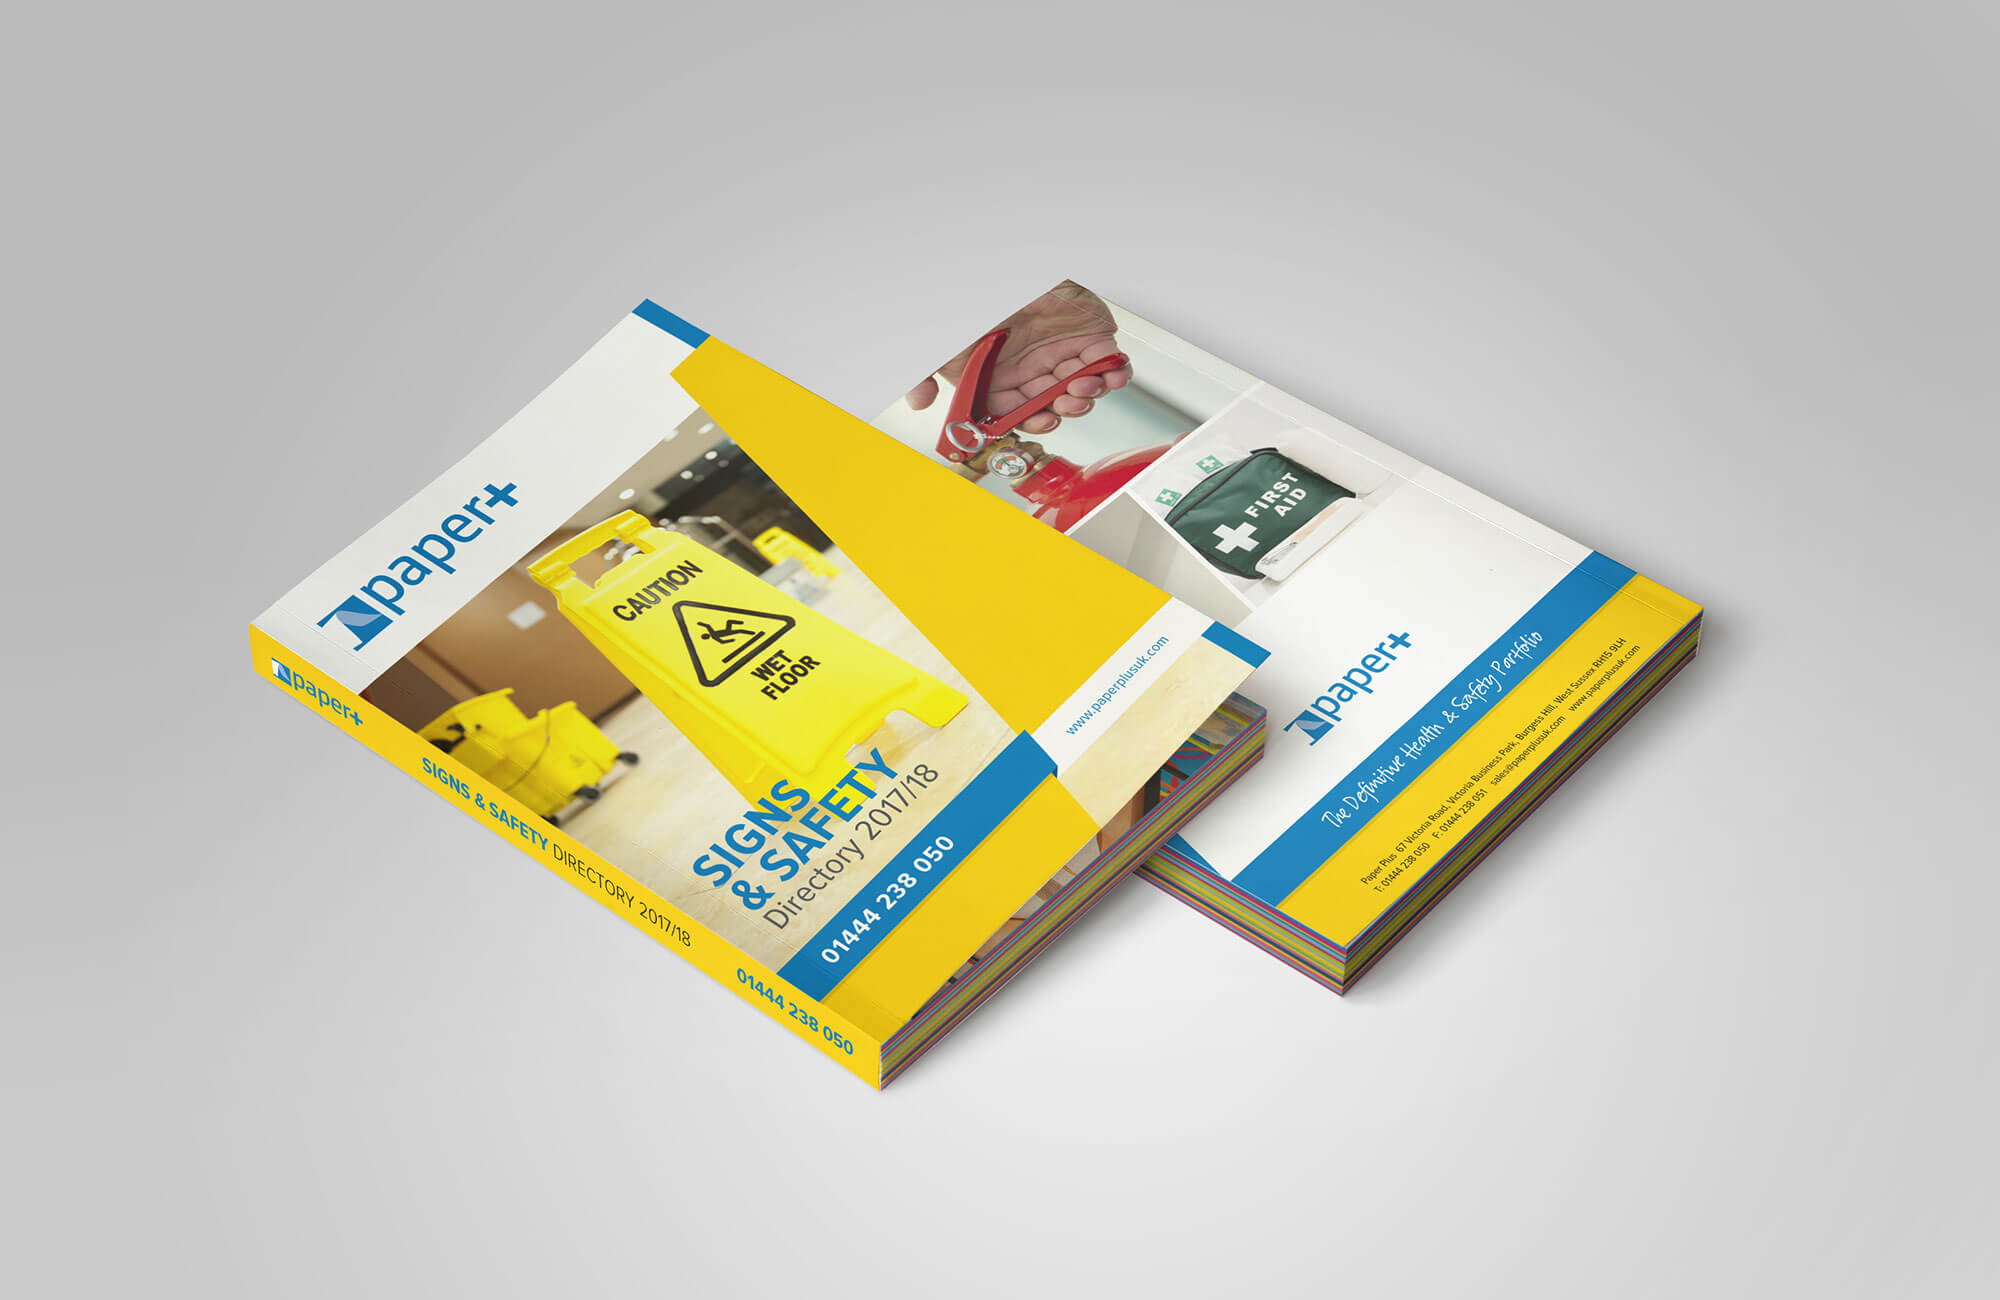 Paper Plus Safety Catalogue Design Concept